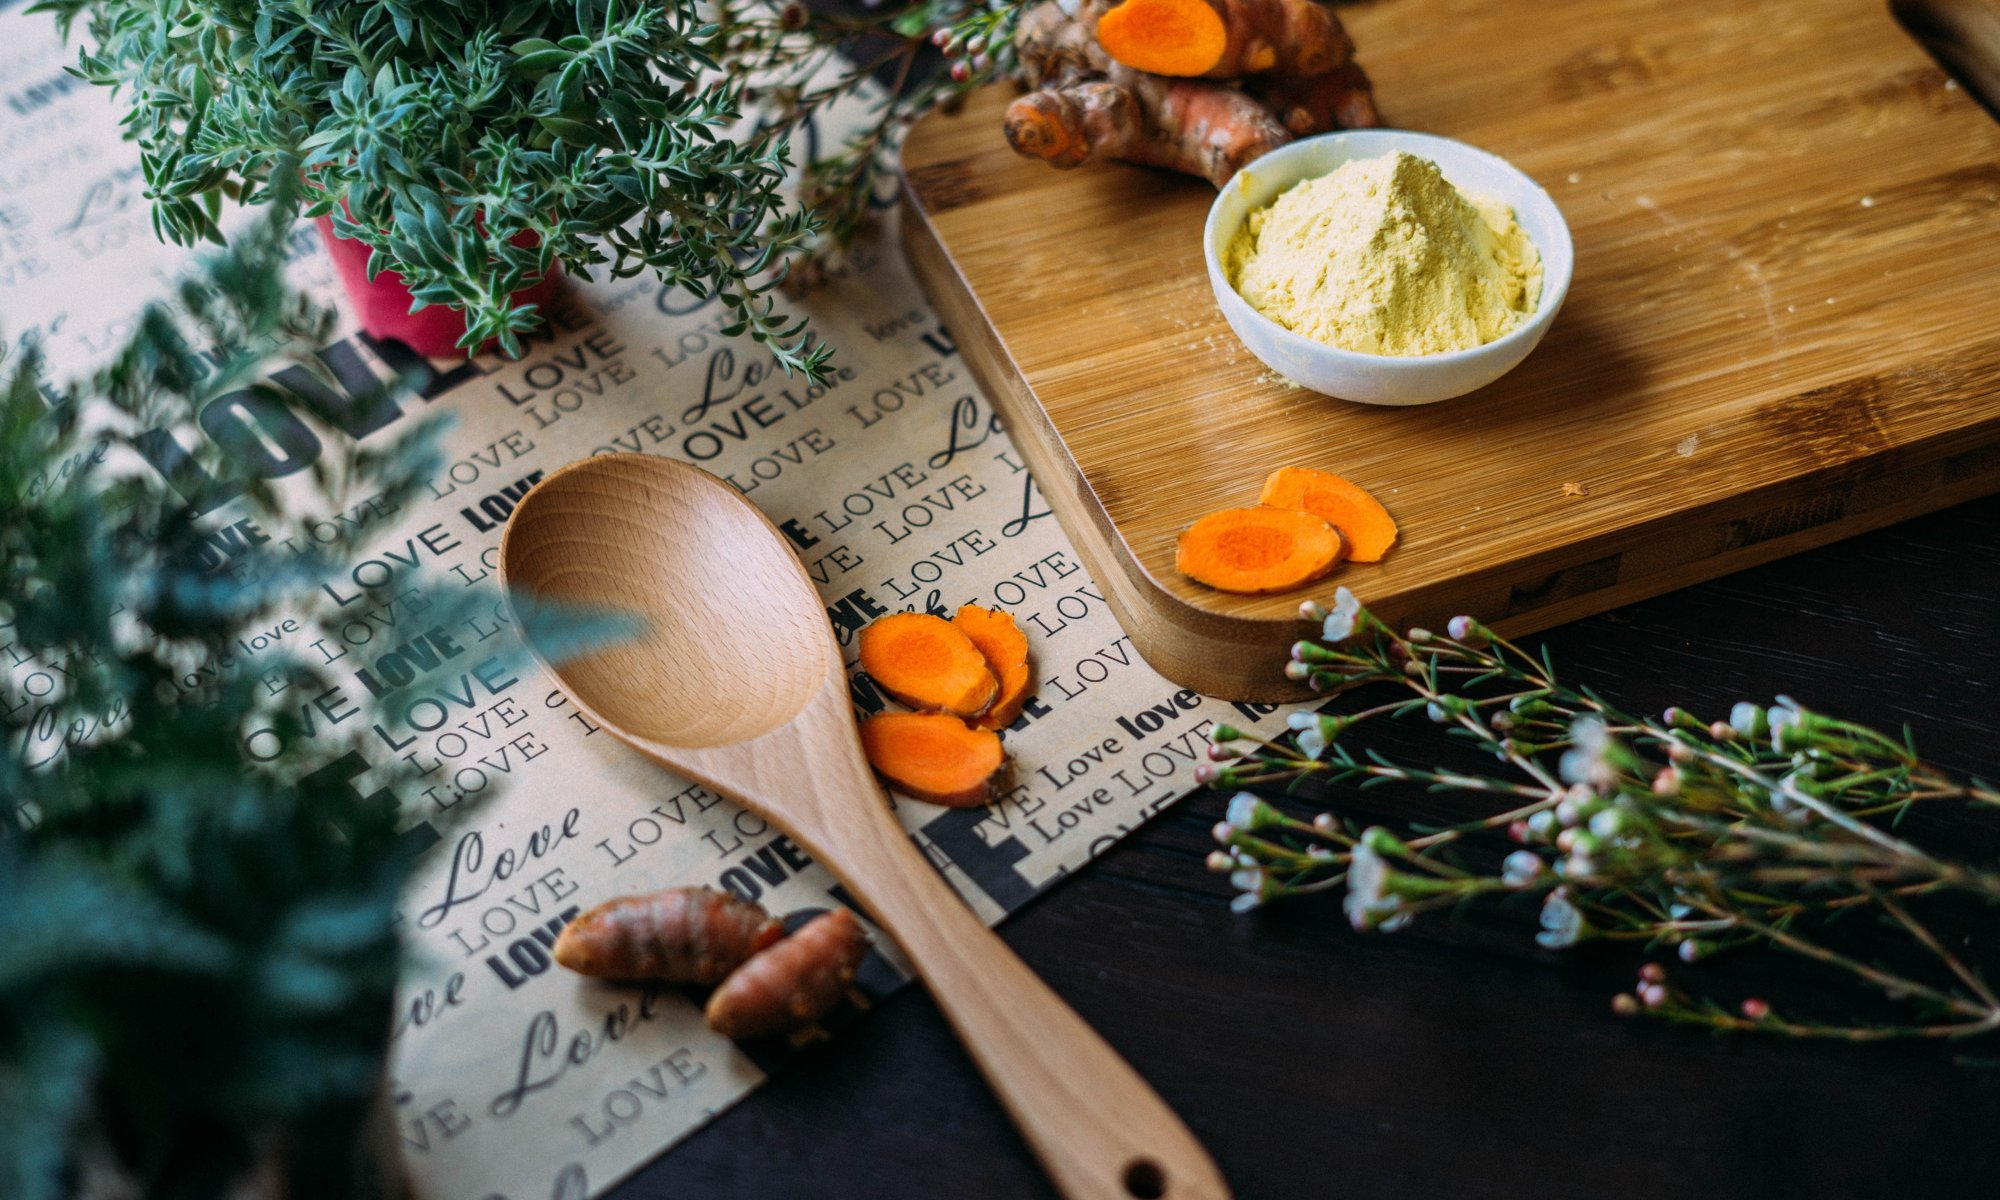 Chopping board with herbs, wooden spoon, and love background